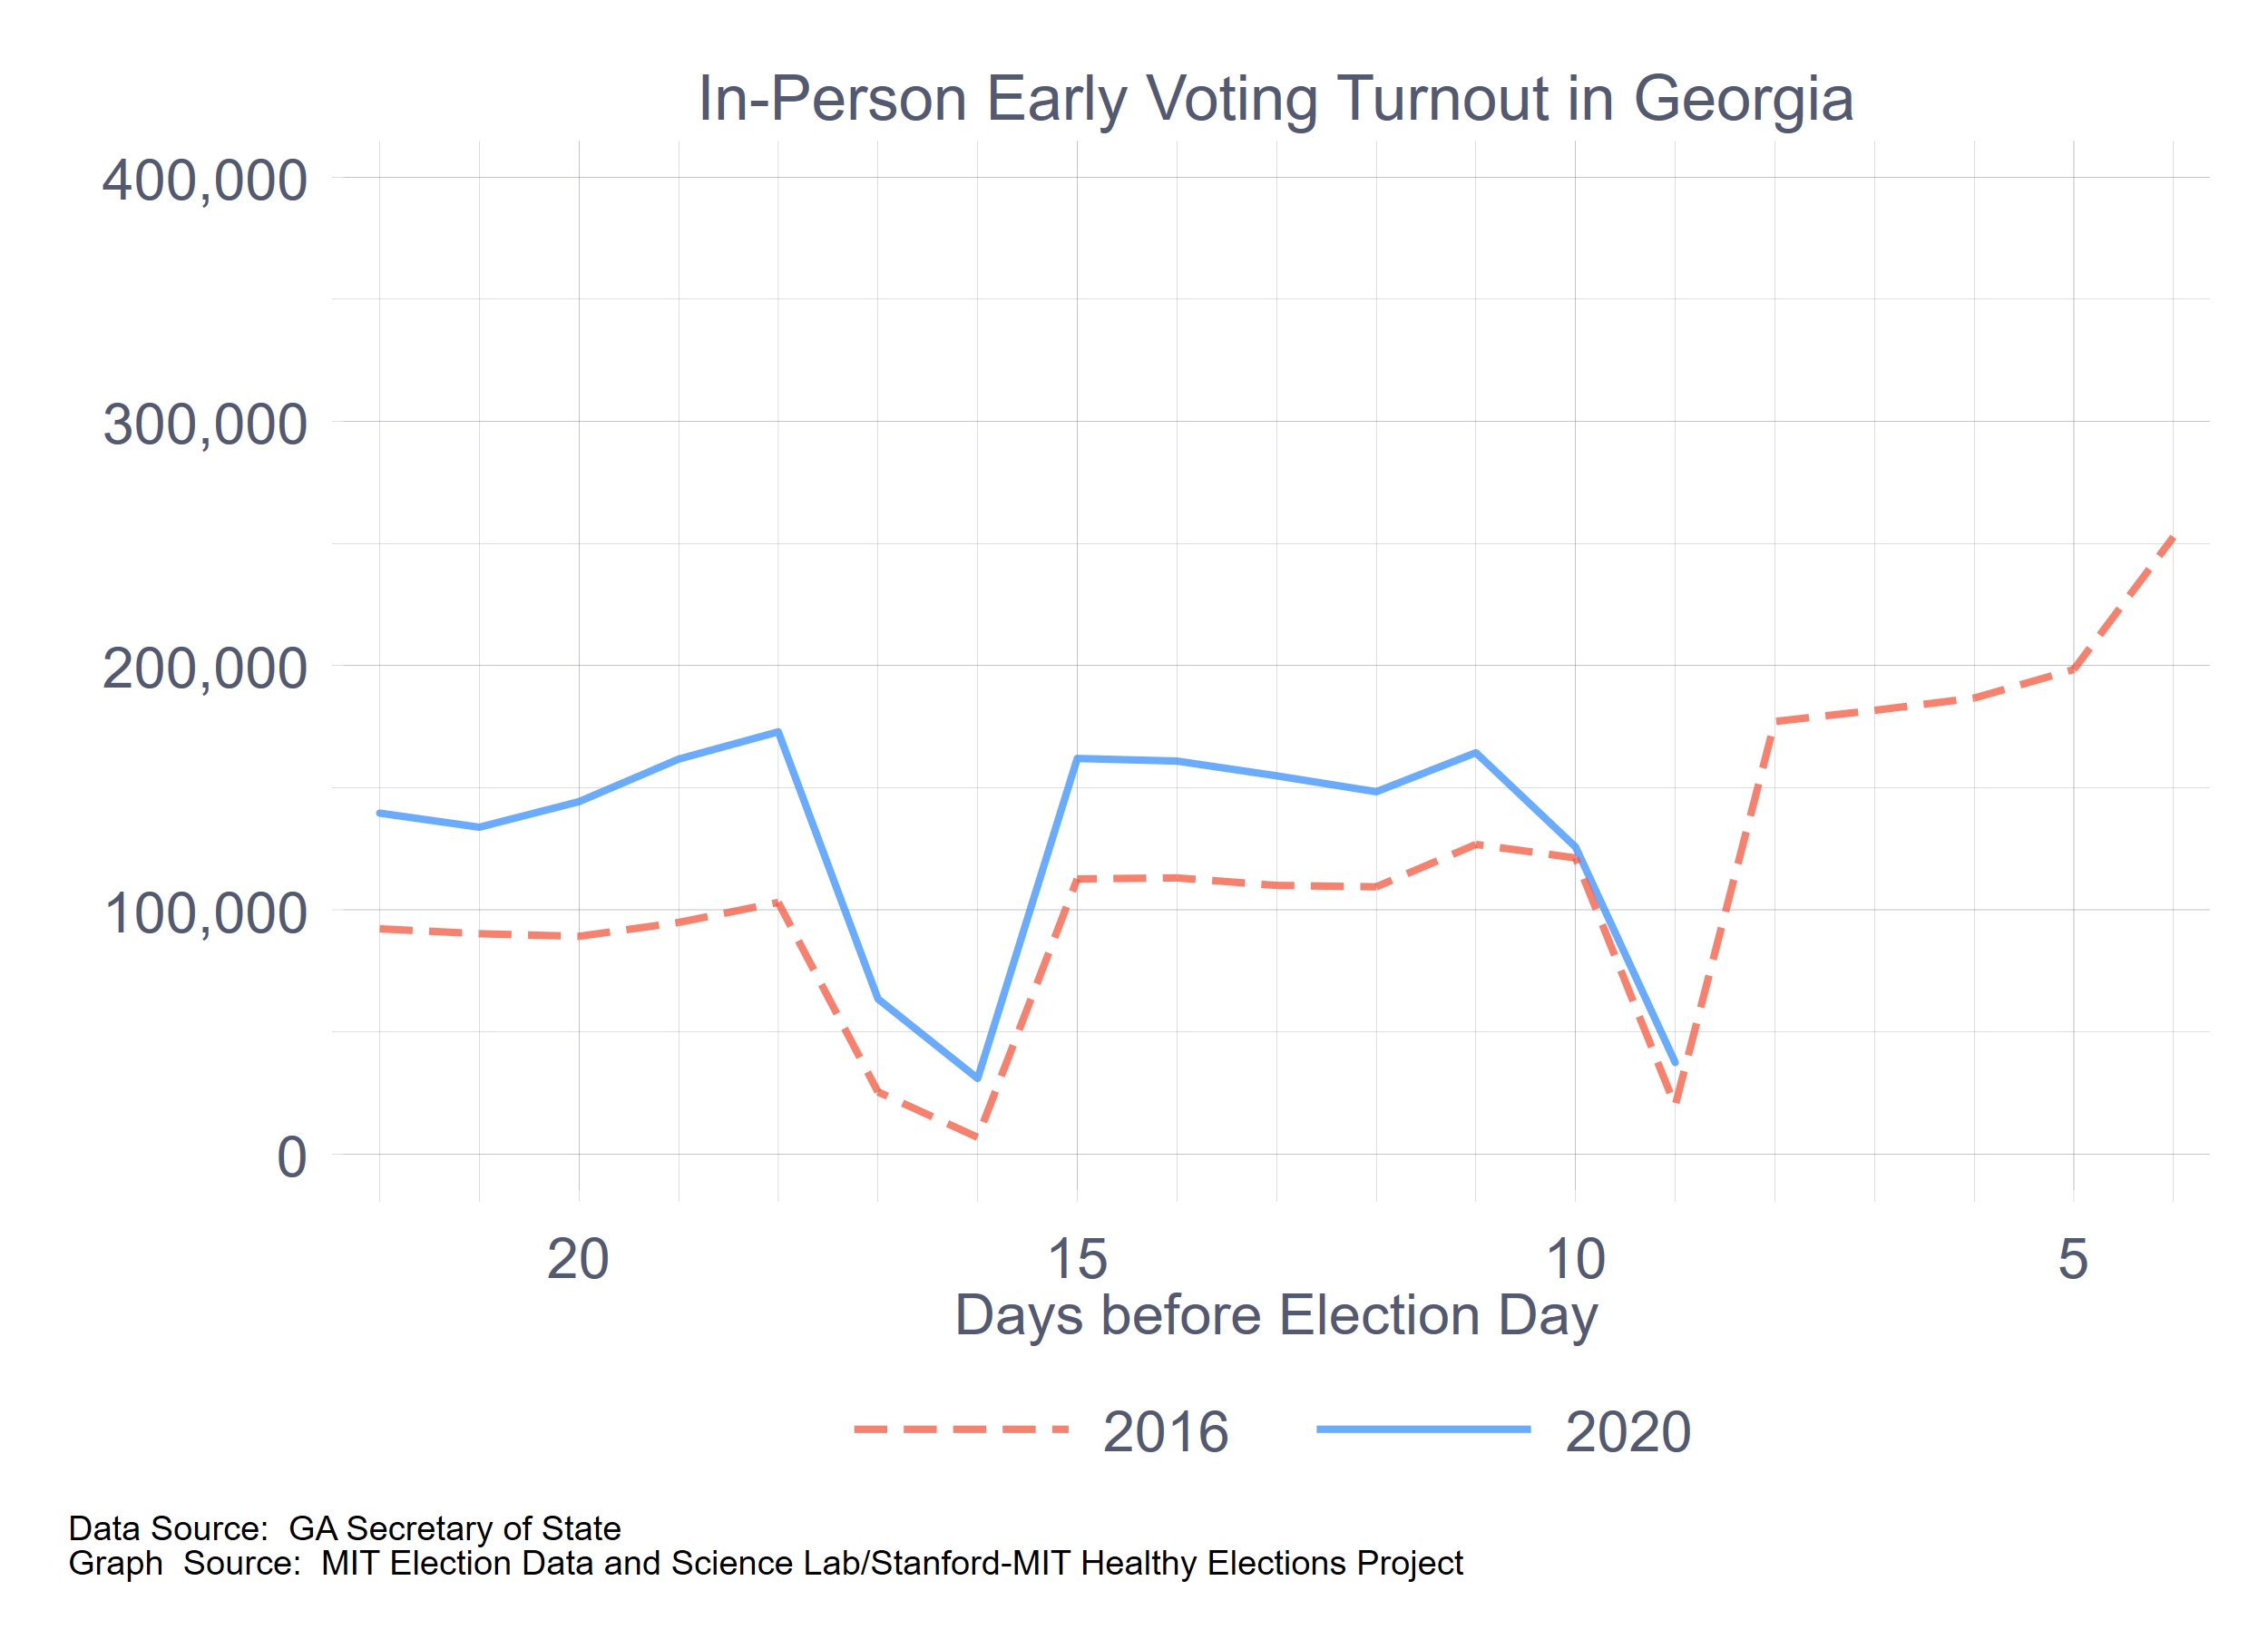 election updates new research analysis and commentary on election reform voting technology and election administration election updates new research